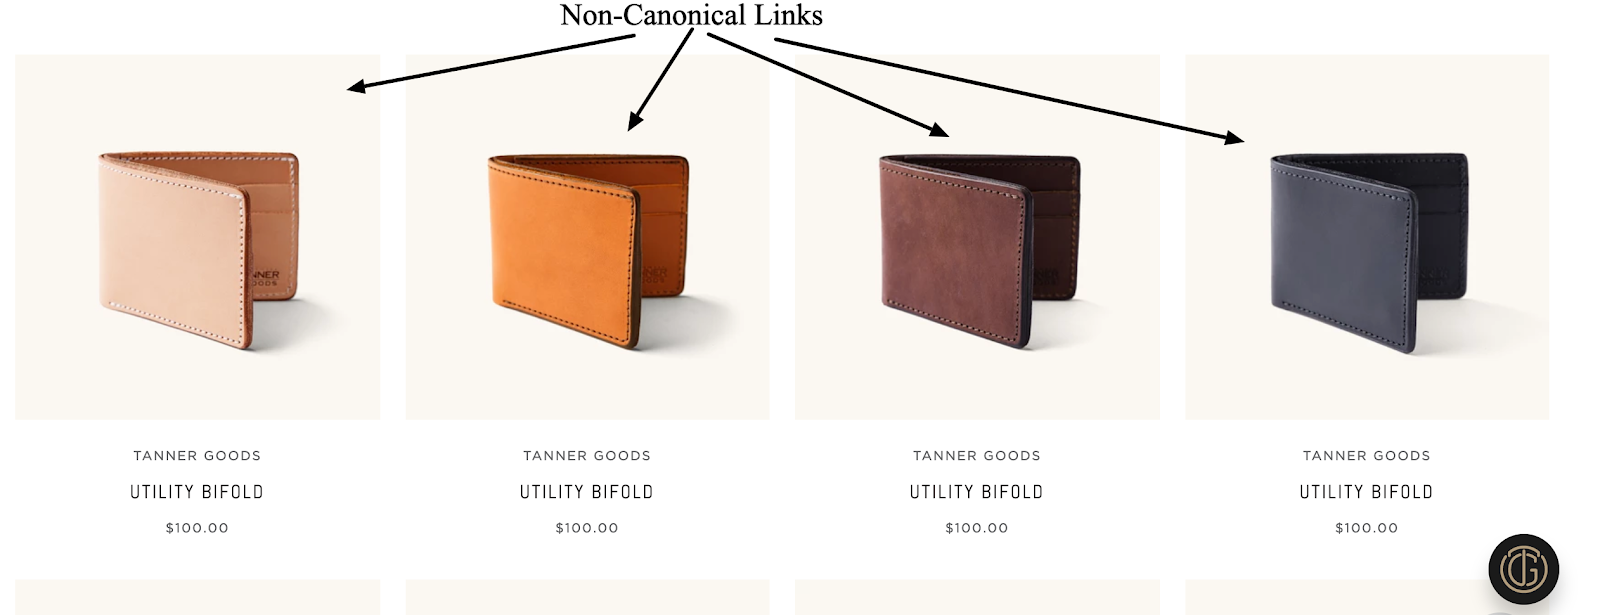 Shopify collection page links to non-canonical URLs